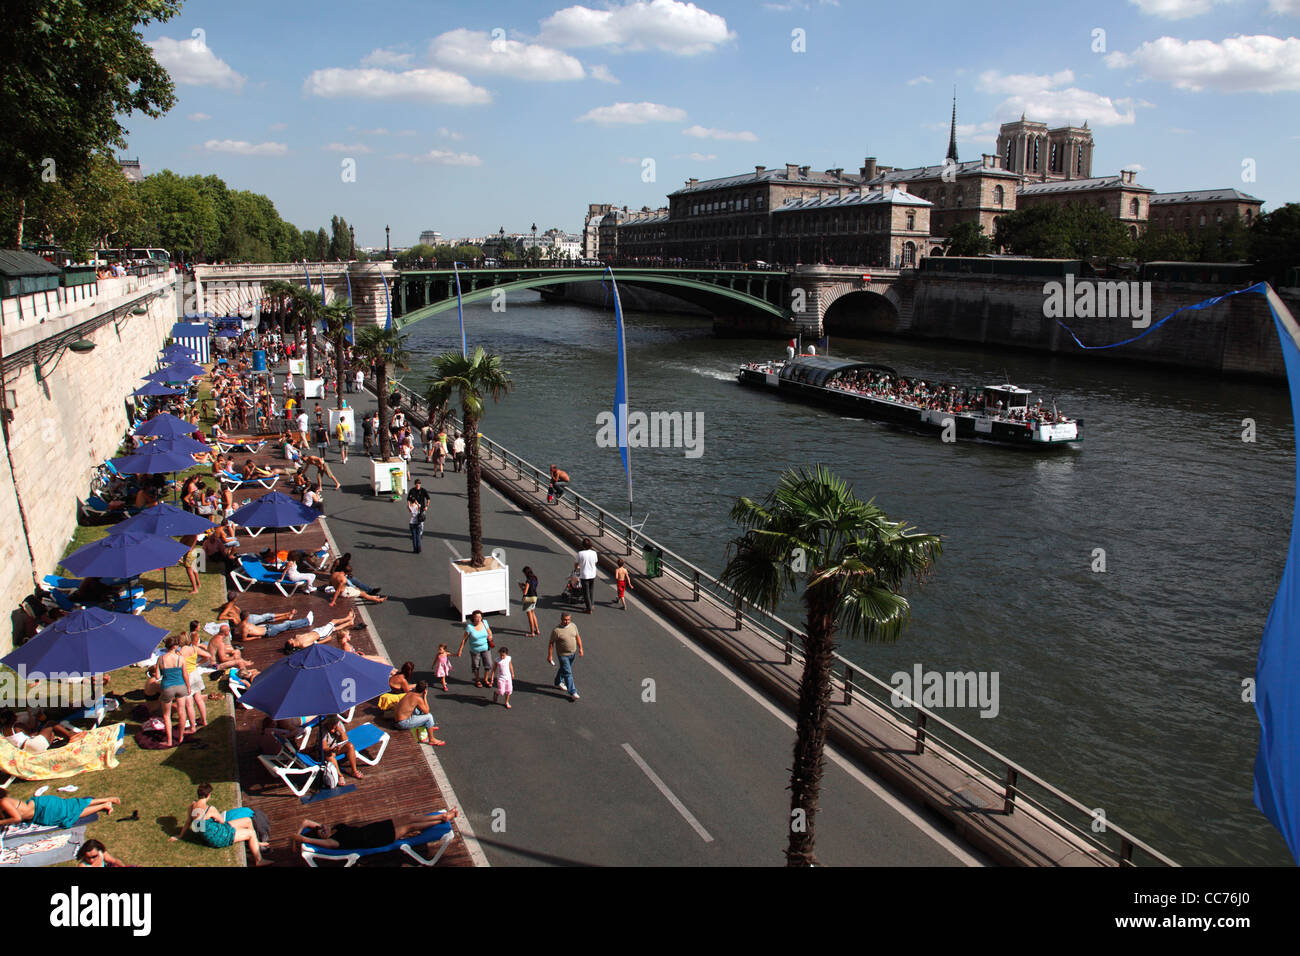 France, Paris, Temporary artificial beaches along River Seine during the months of Paris-Plages - Stock Image